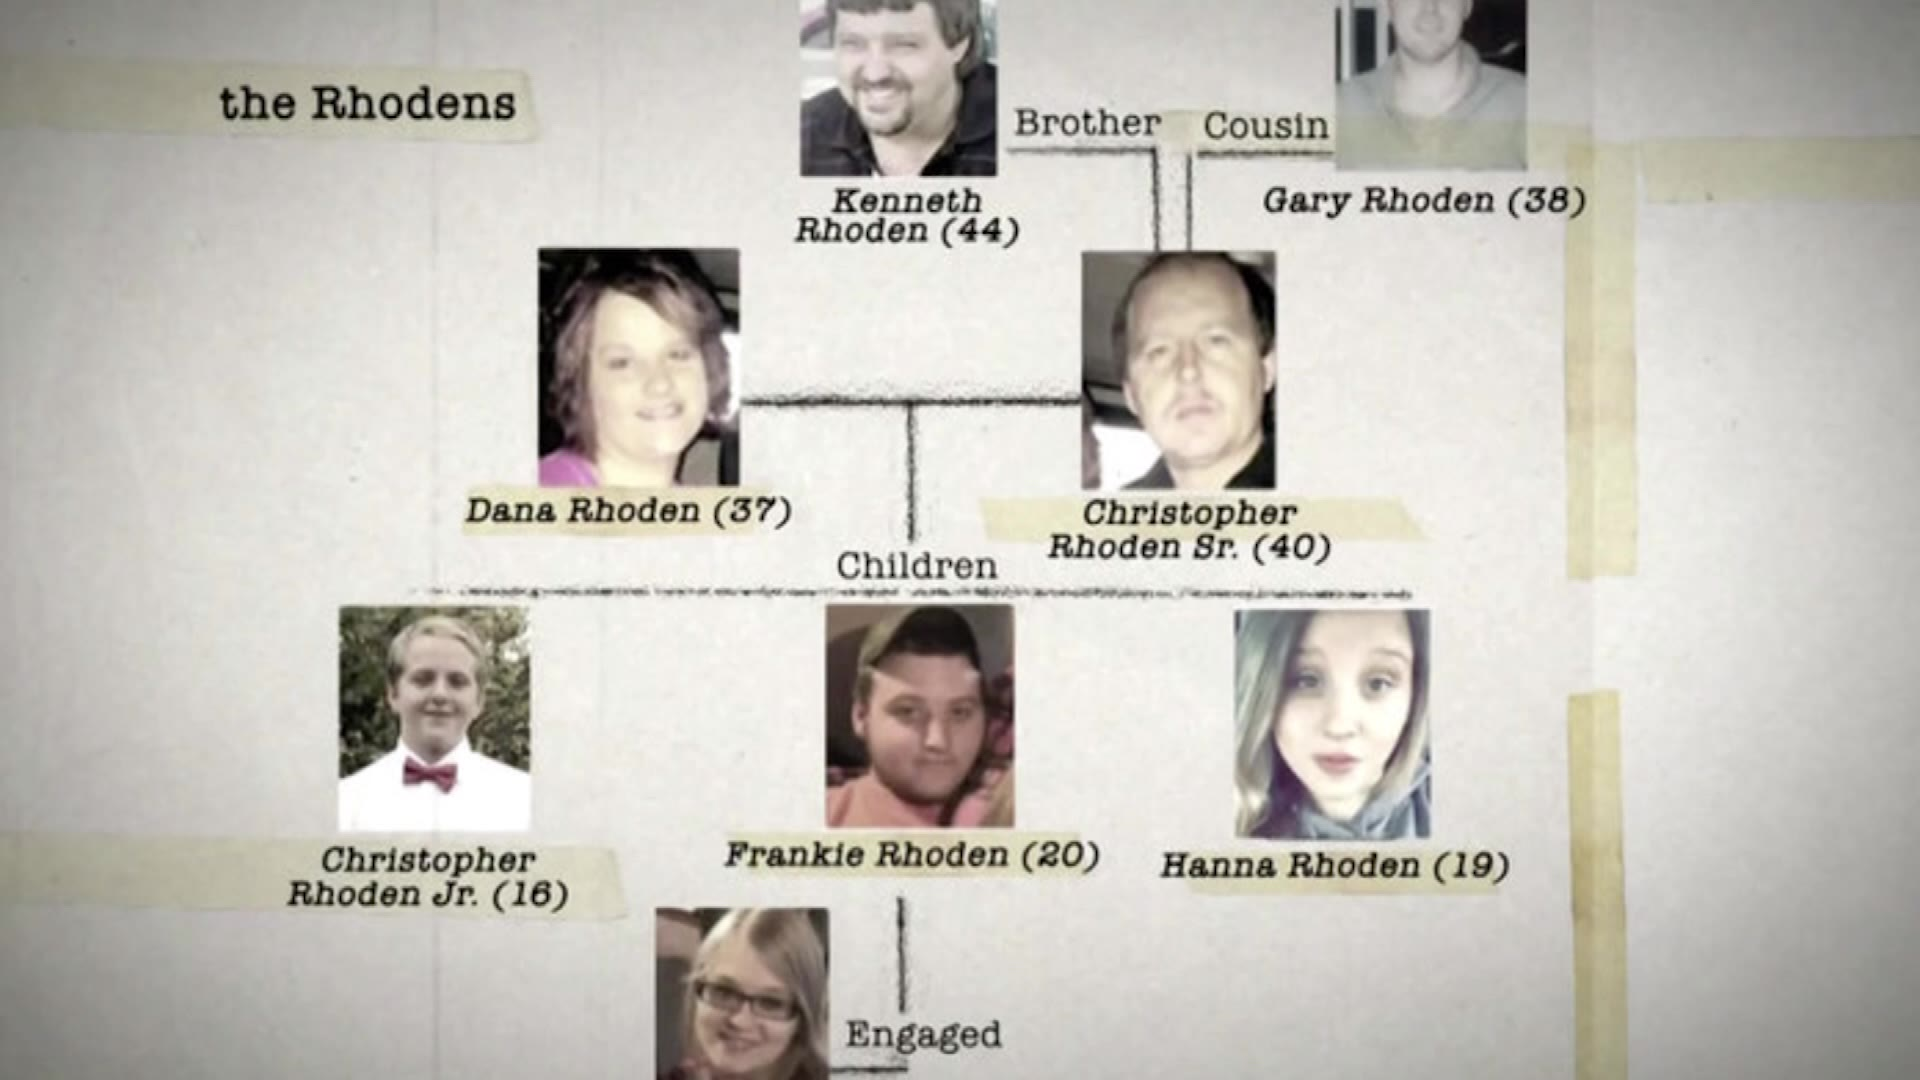 What Was The Motivation For the Pike County Murders?